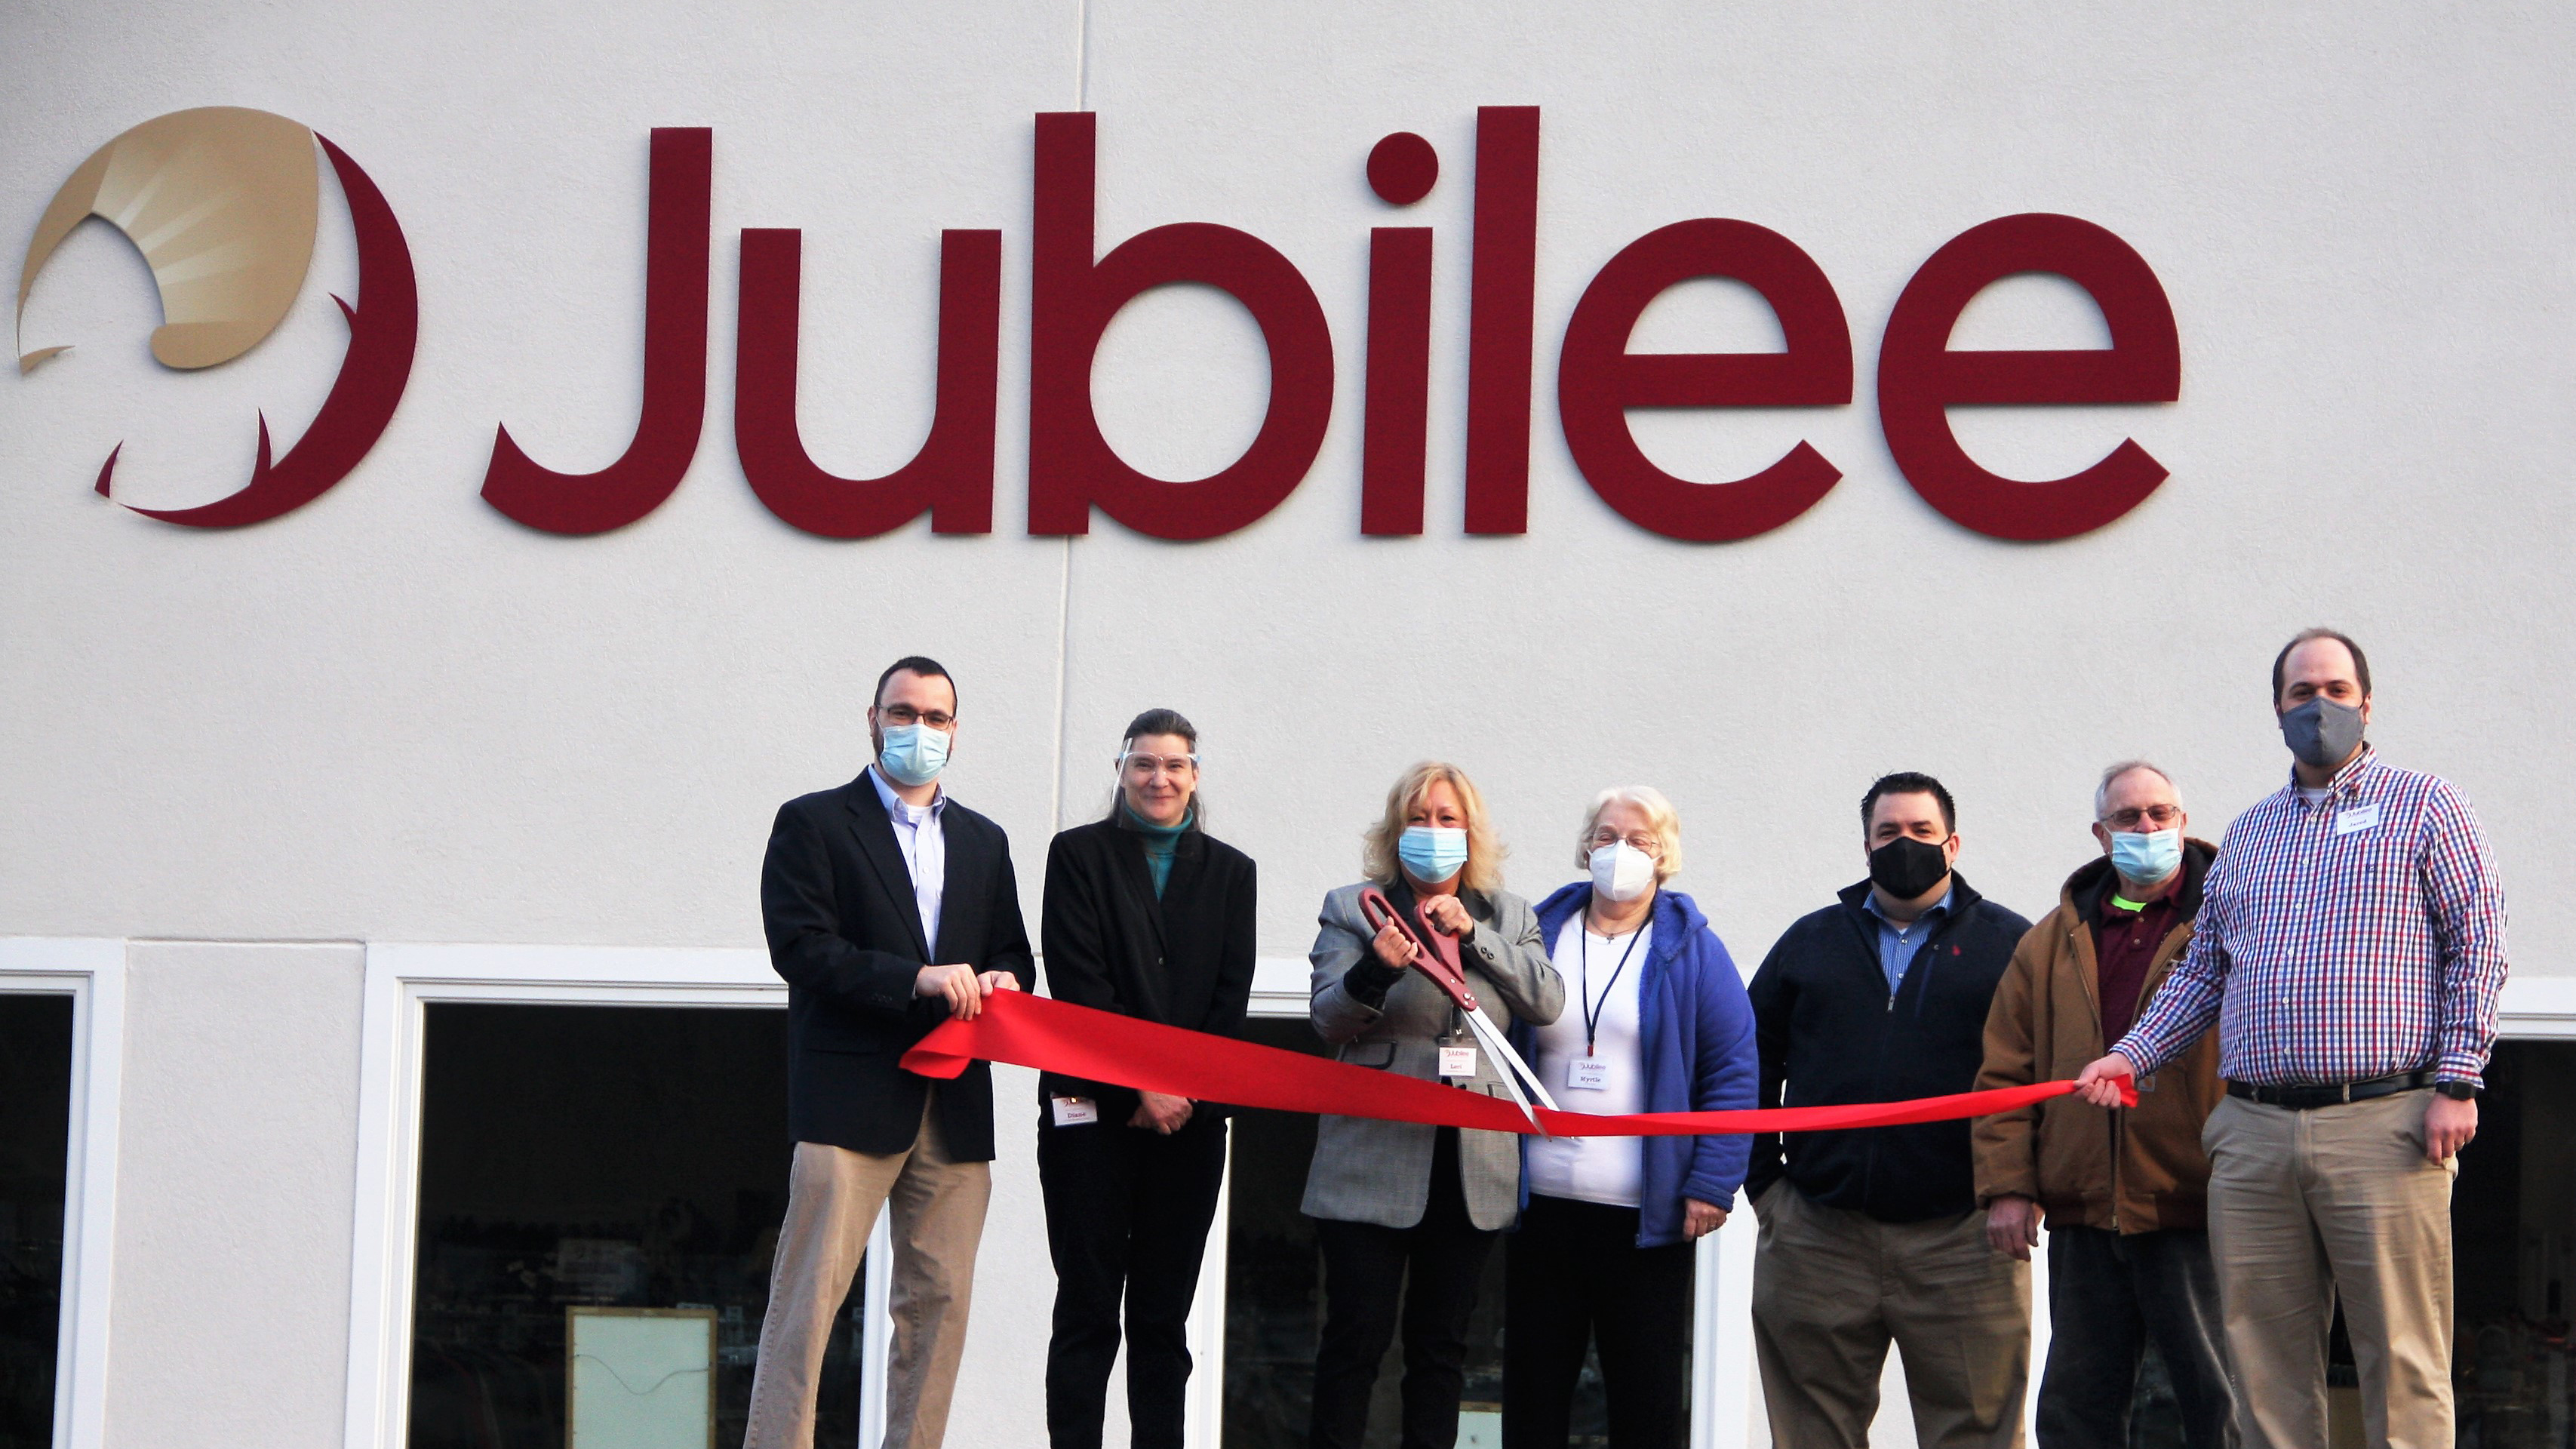 Jubilee Ministries expands its mission to Berks County through Wernersville store